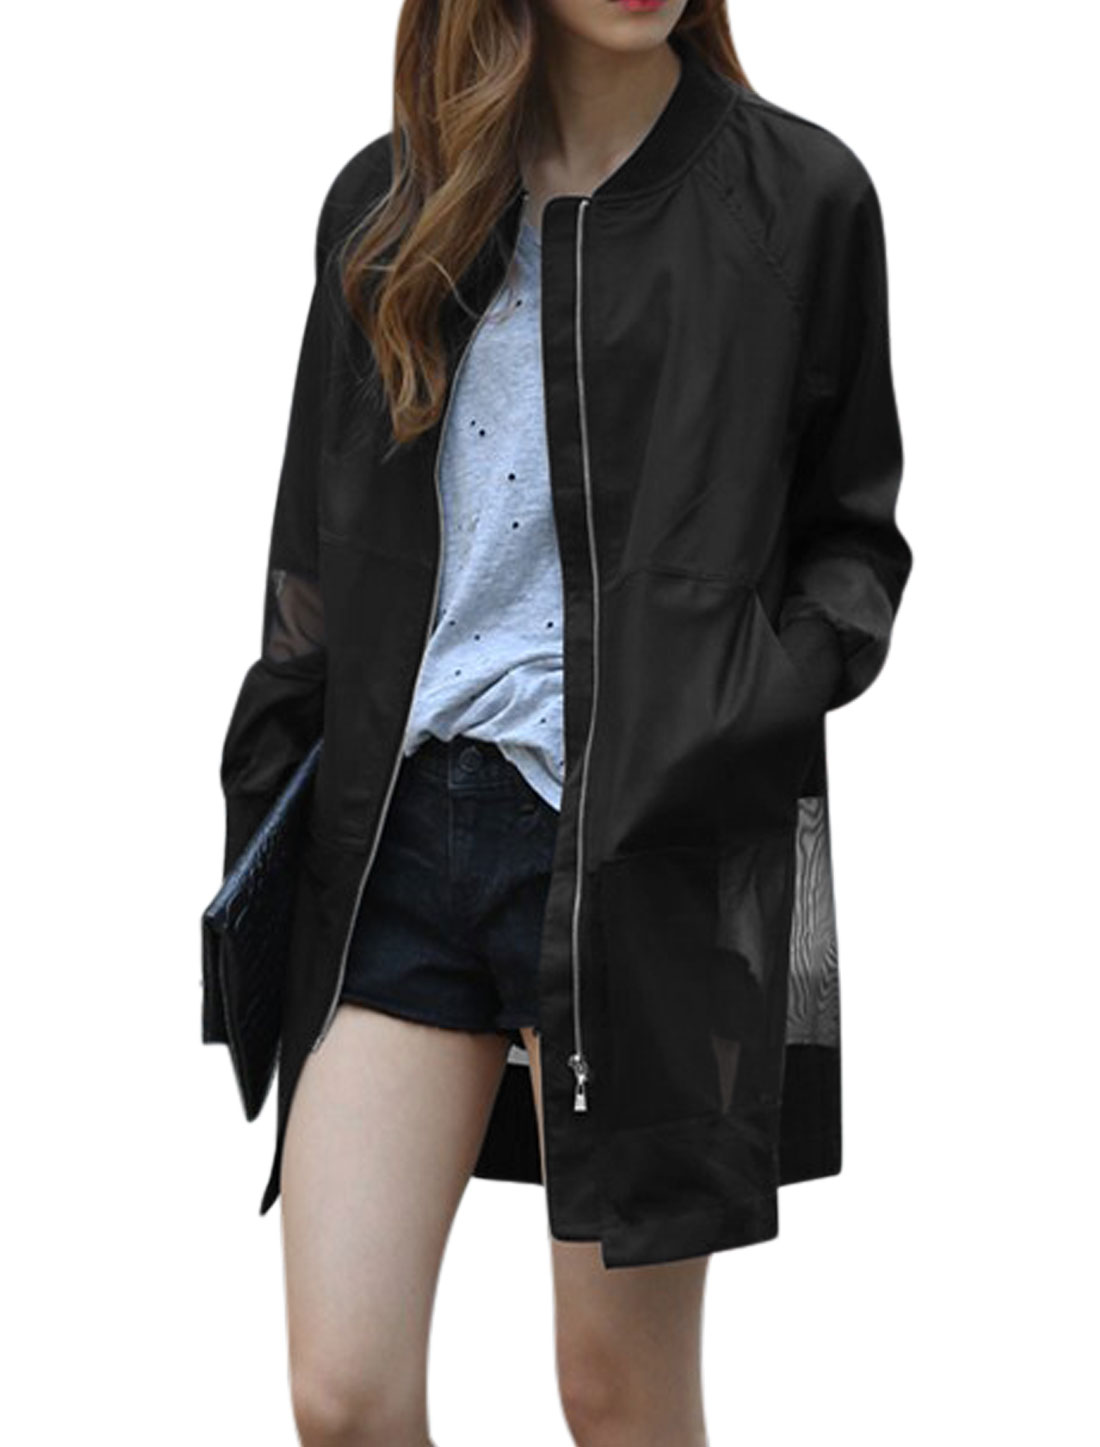 Women Stand Collar Long Sleeves Mesh Panel See Through Trench Jacket Black XS